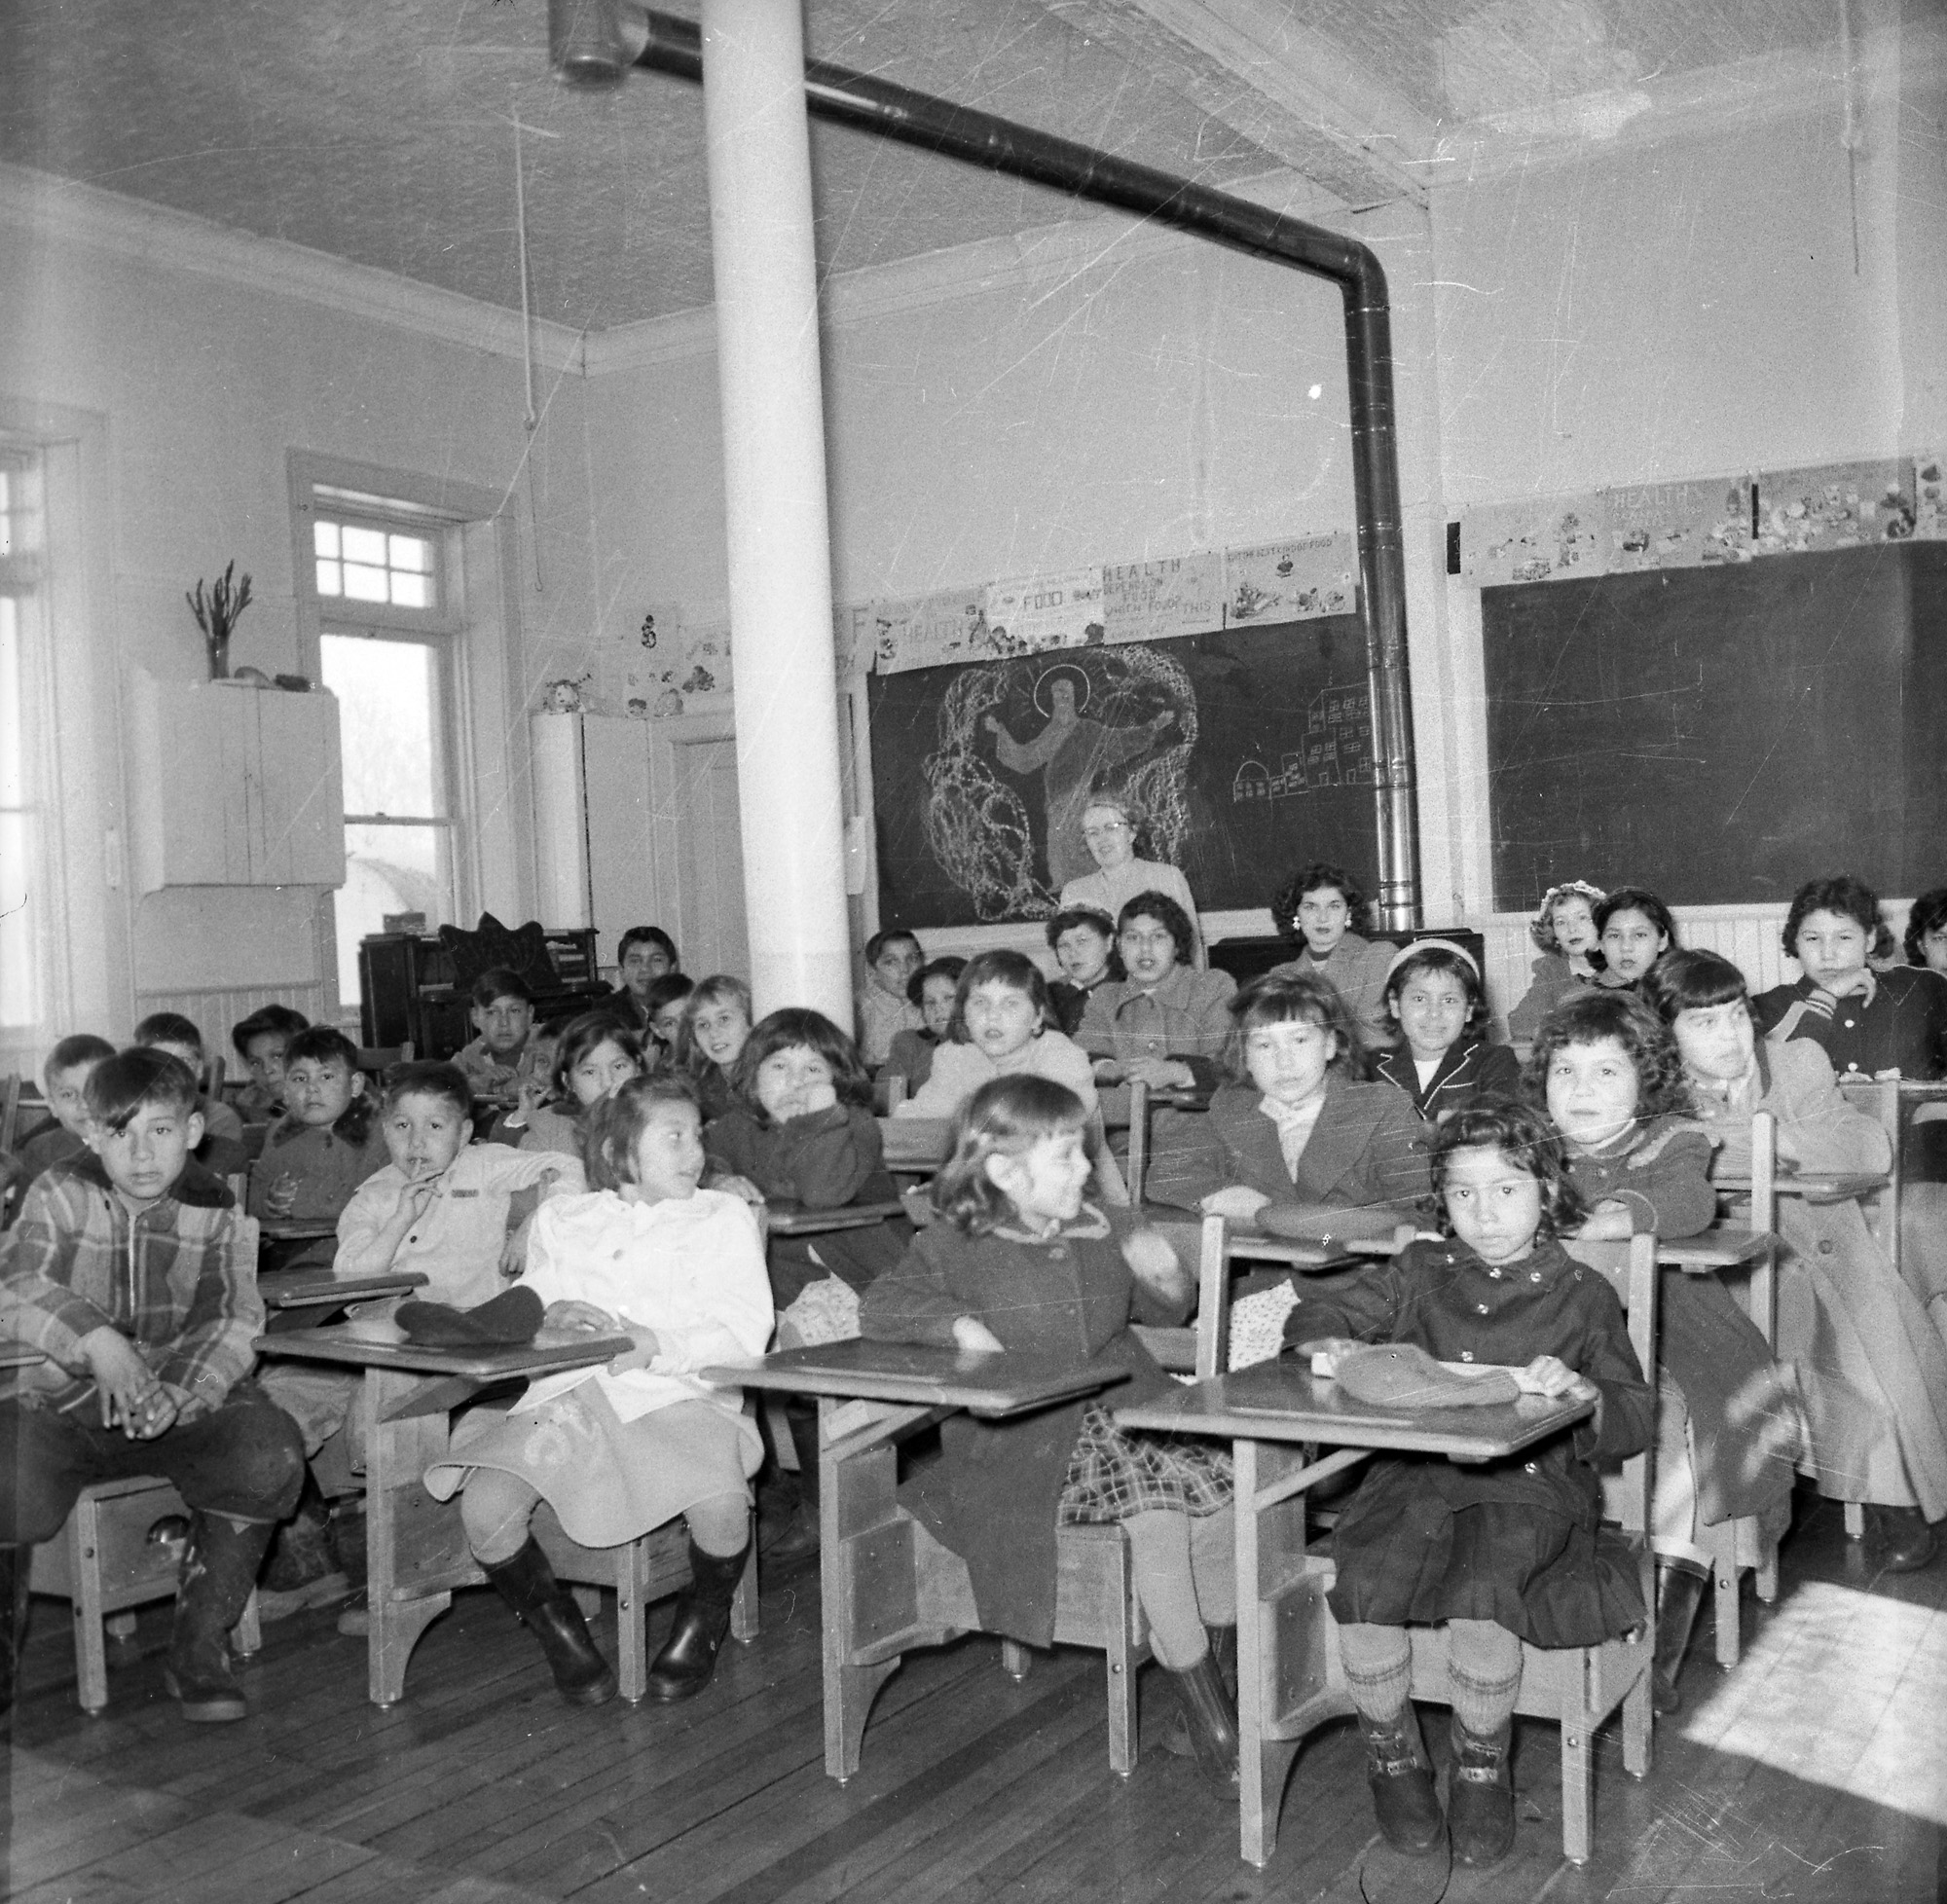 residential schools history essay A history of residential schools in canada cbc news cbcnewsca answers frequently asked questions about residential school abuse and the federal.